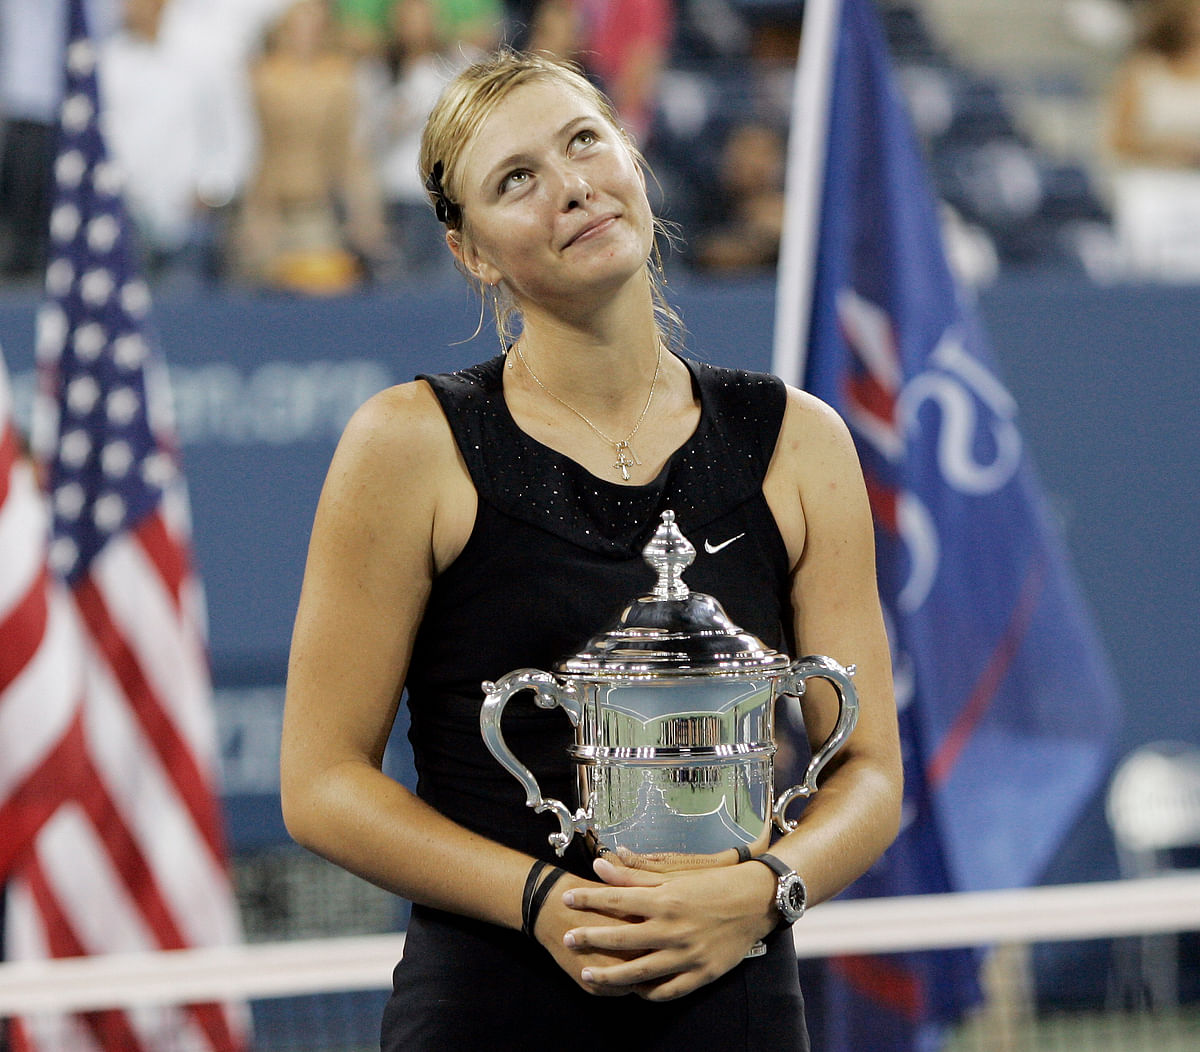 In this Sept. 9, 2006, file photo, Maria Sharapova looks up to the crowd after winning the women's singles championship over Justin Henin-Hardenne of Belgium at the U.S. Open tennis tournament in New York.